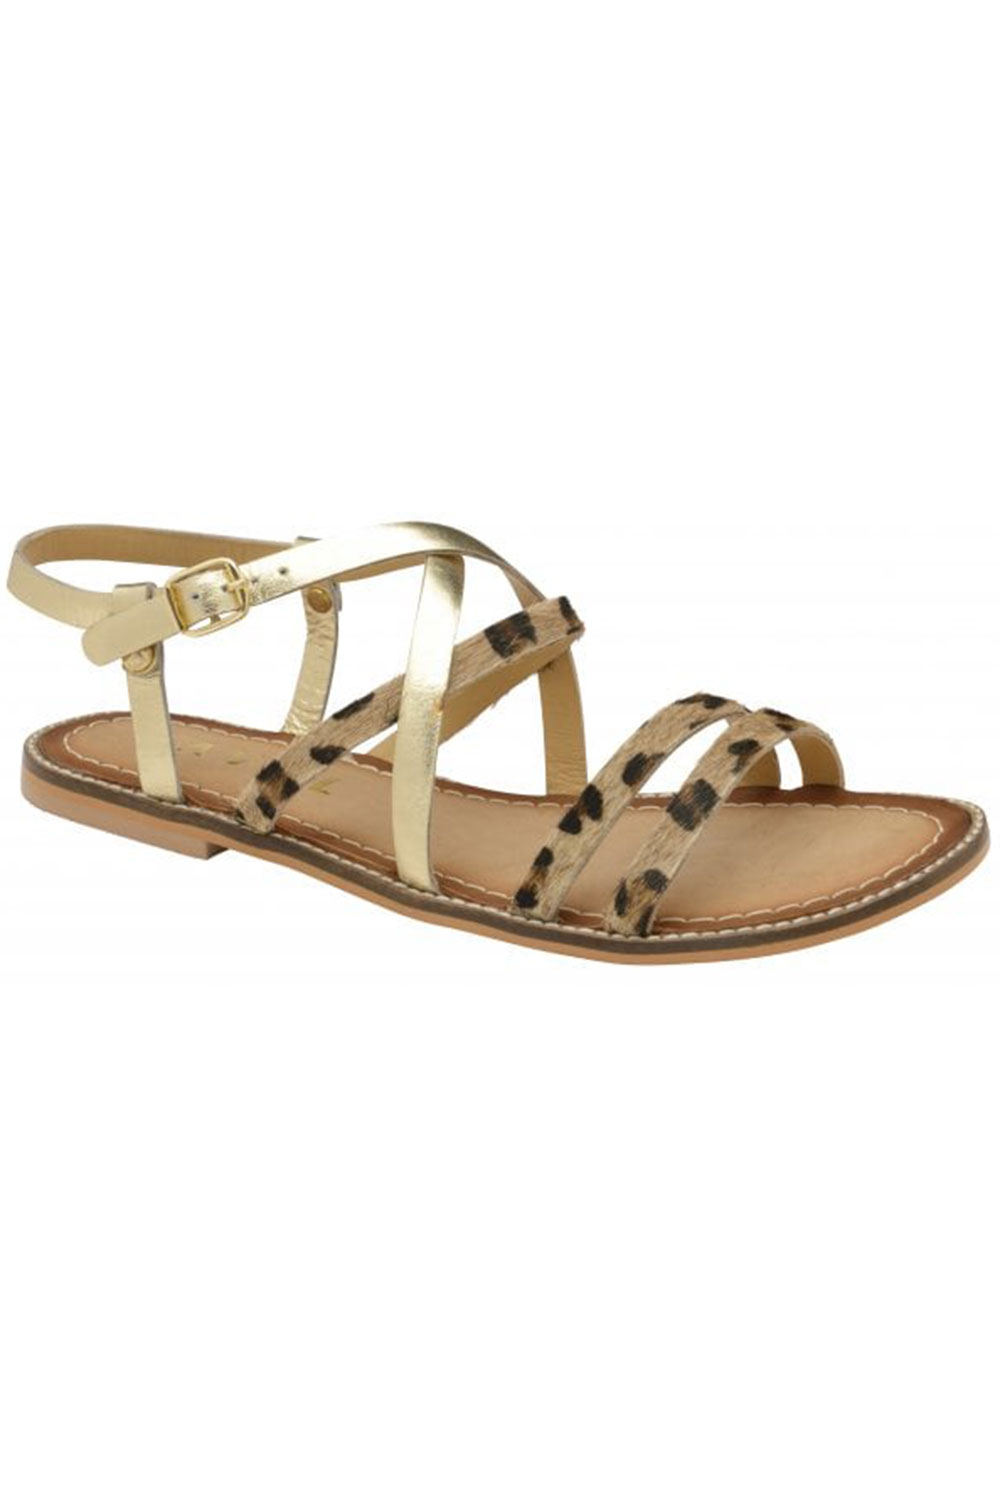 Ravel Leopard Manatee Leather Flat Sandals